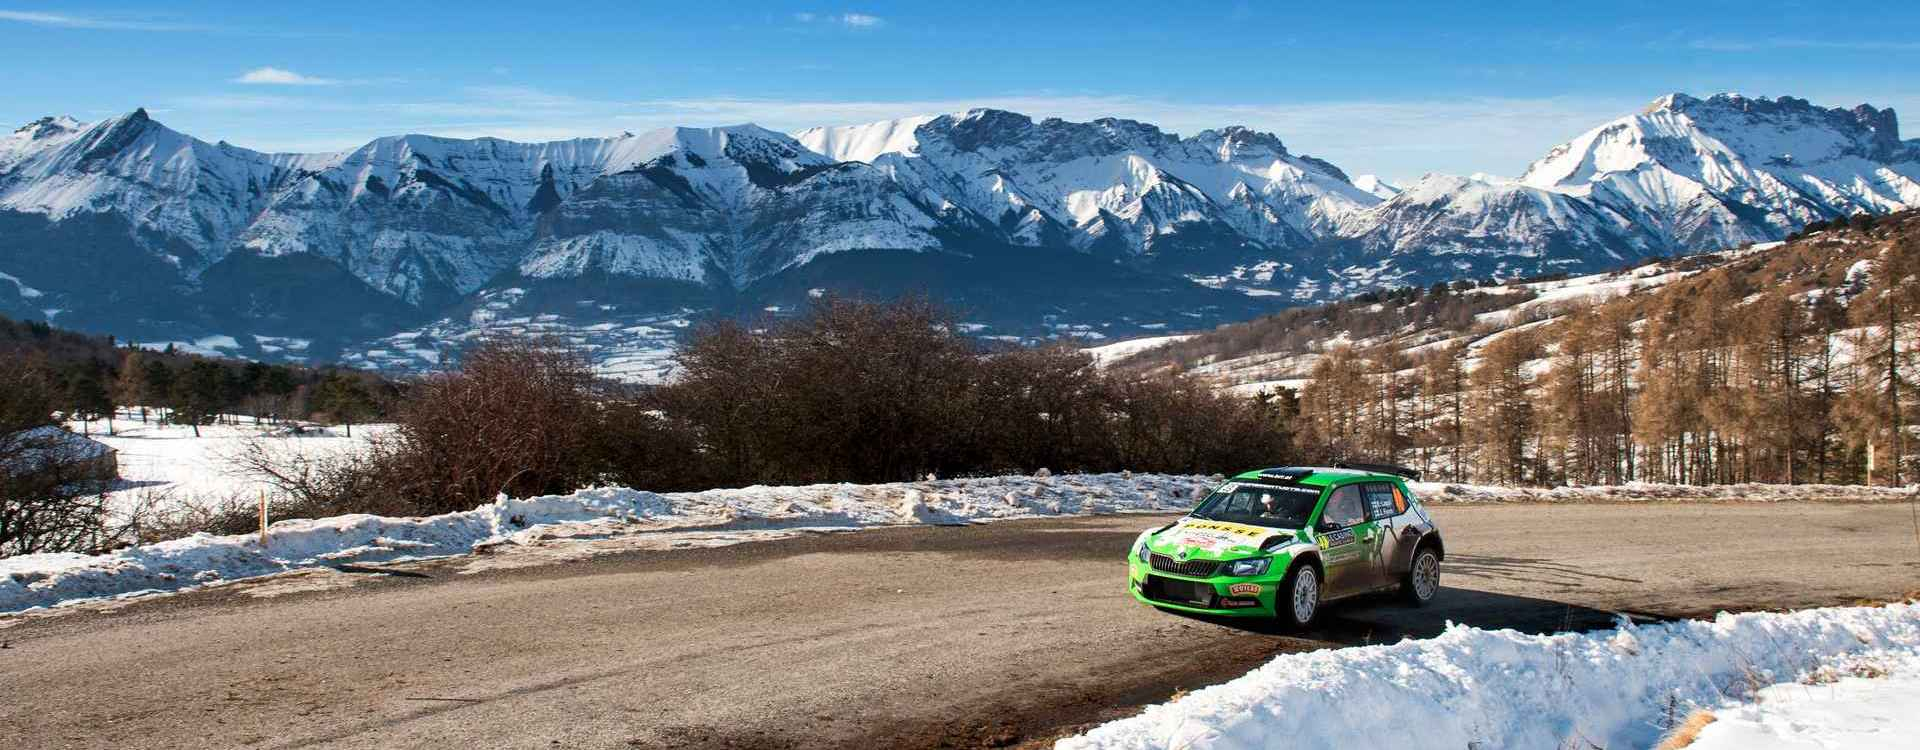 Rallye Monte Carlo: Flying Fabia R5 cars impress on the mountain stages